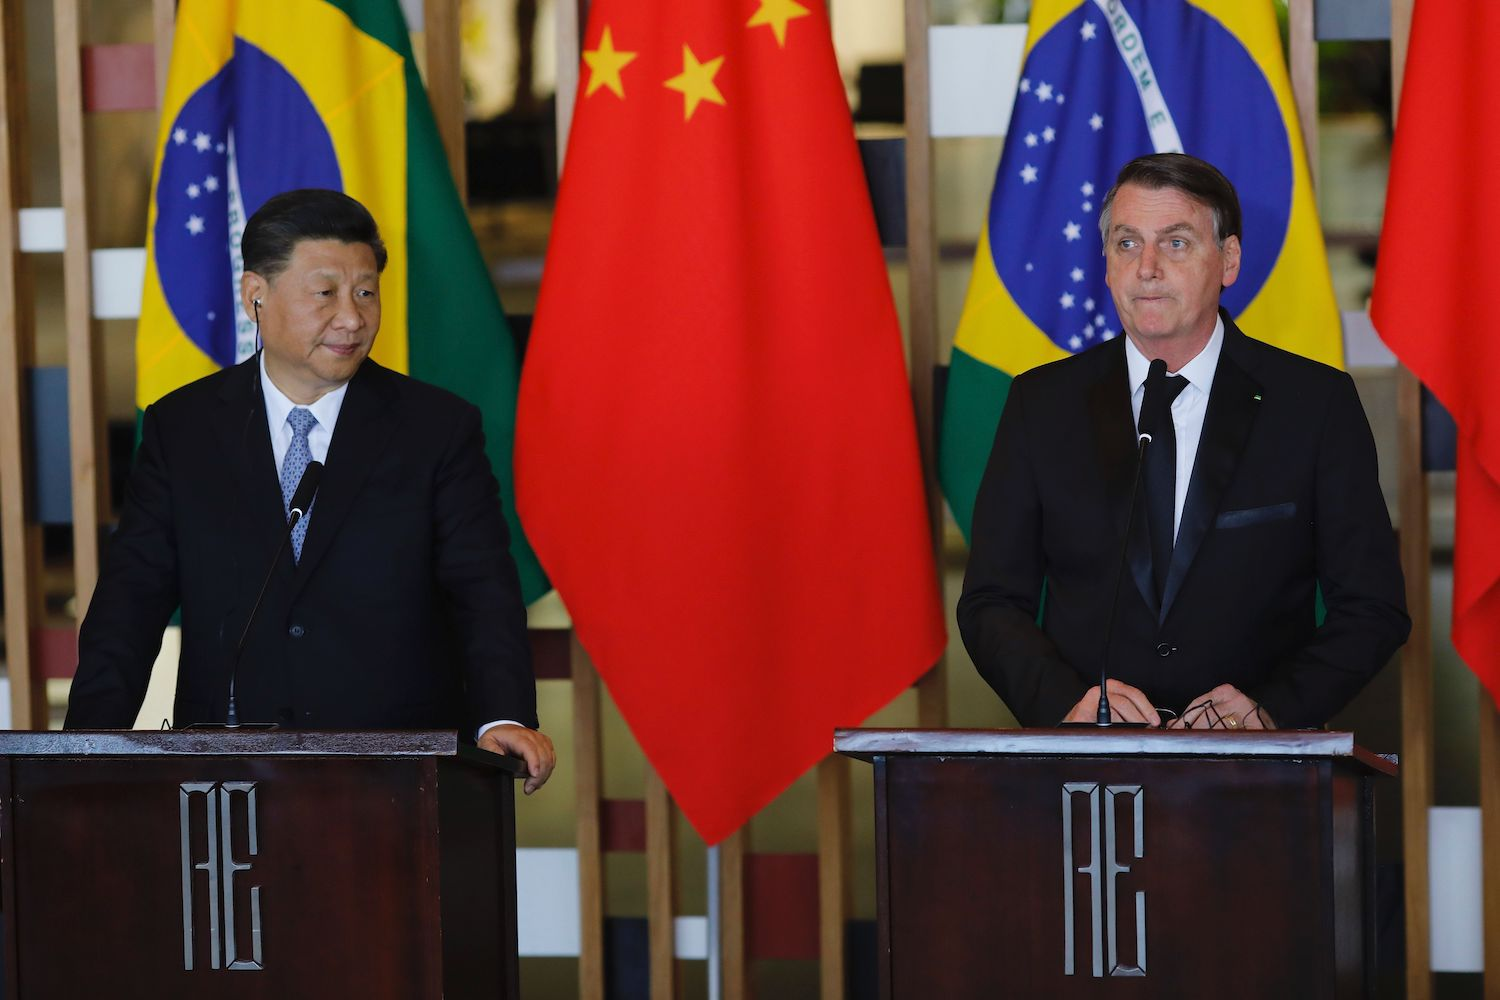 Chinese President Xi Jinping and Brazilian President Jair Bolsonaro attend a press statement after a bilateral meeting in Brasilia, Brazil, on Nov. 13, 2019.